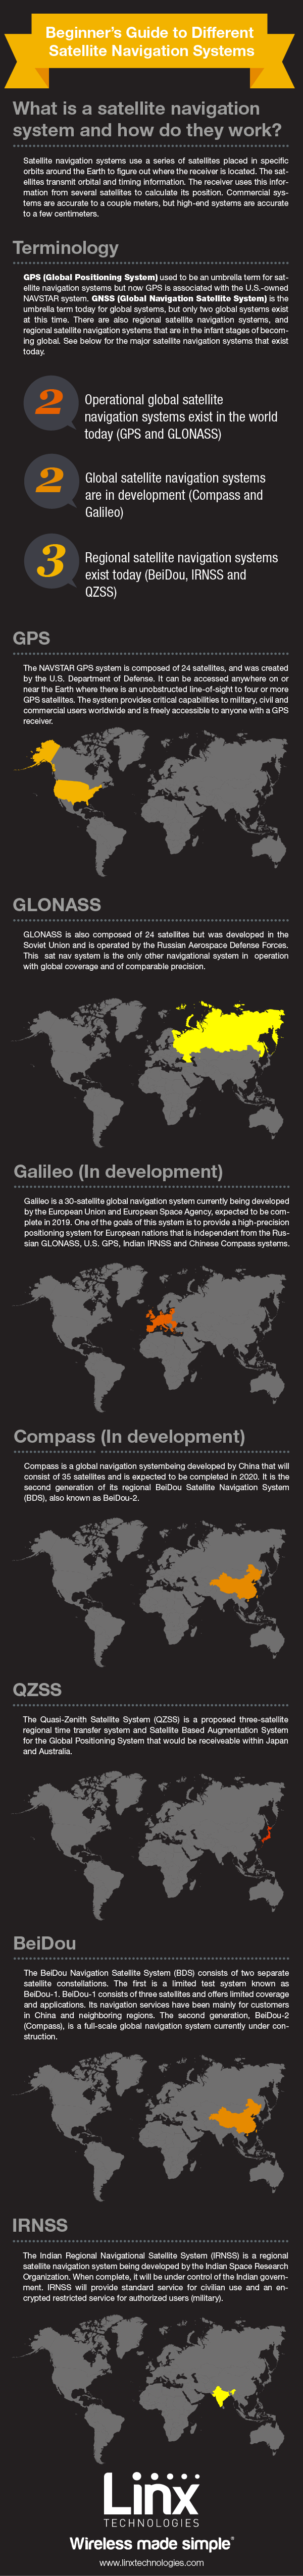 different-satellite-navigation-systems-infographic